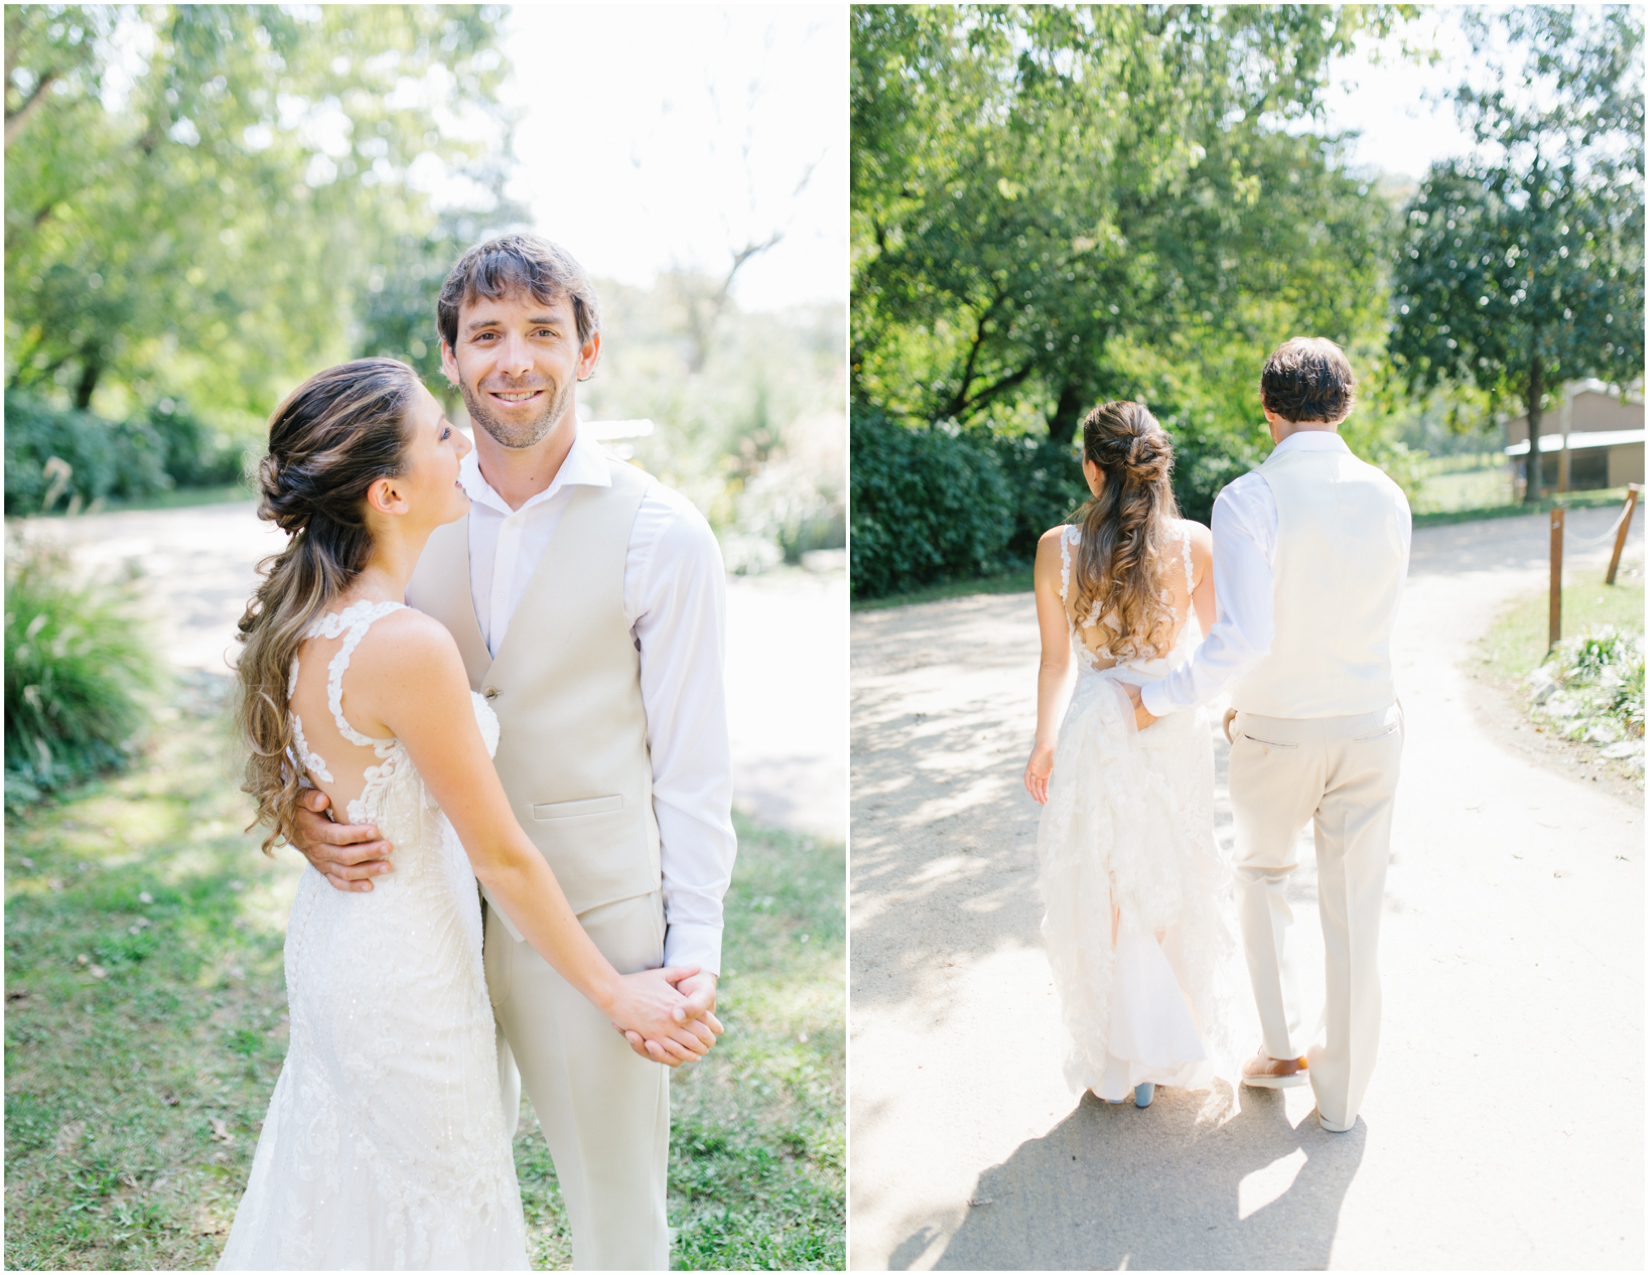 Tennessee River Place Wedding | Chattanooga, TN Wedding | Beautiful Wedding Details | Bride and Groom Portraits Wedding Day | Southern Bride | VSCO | Emma Rose Company.jpg